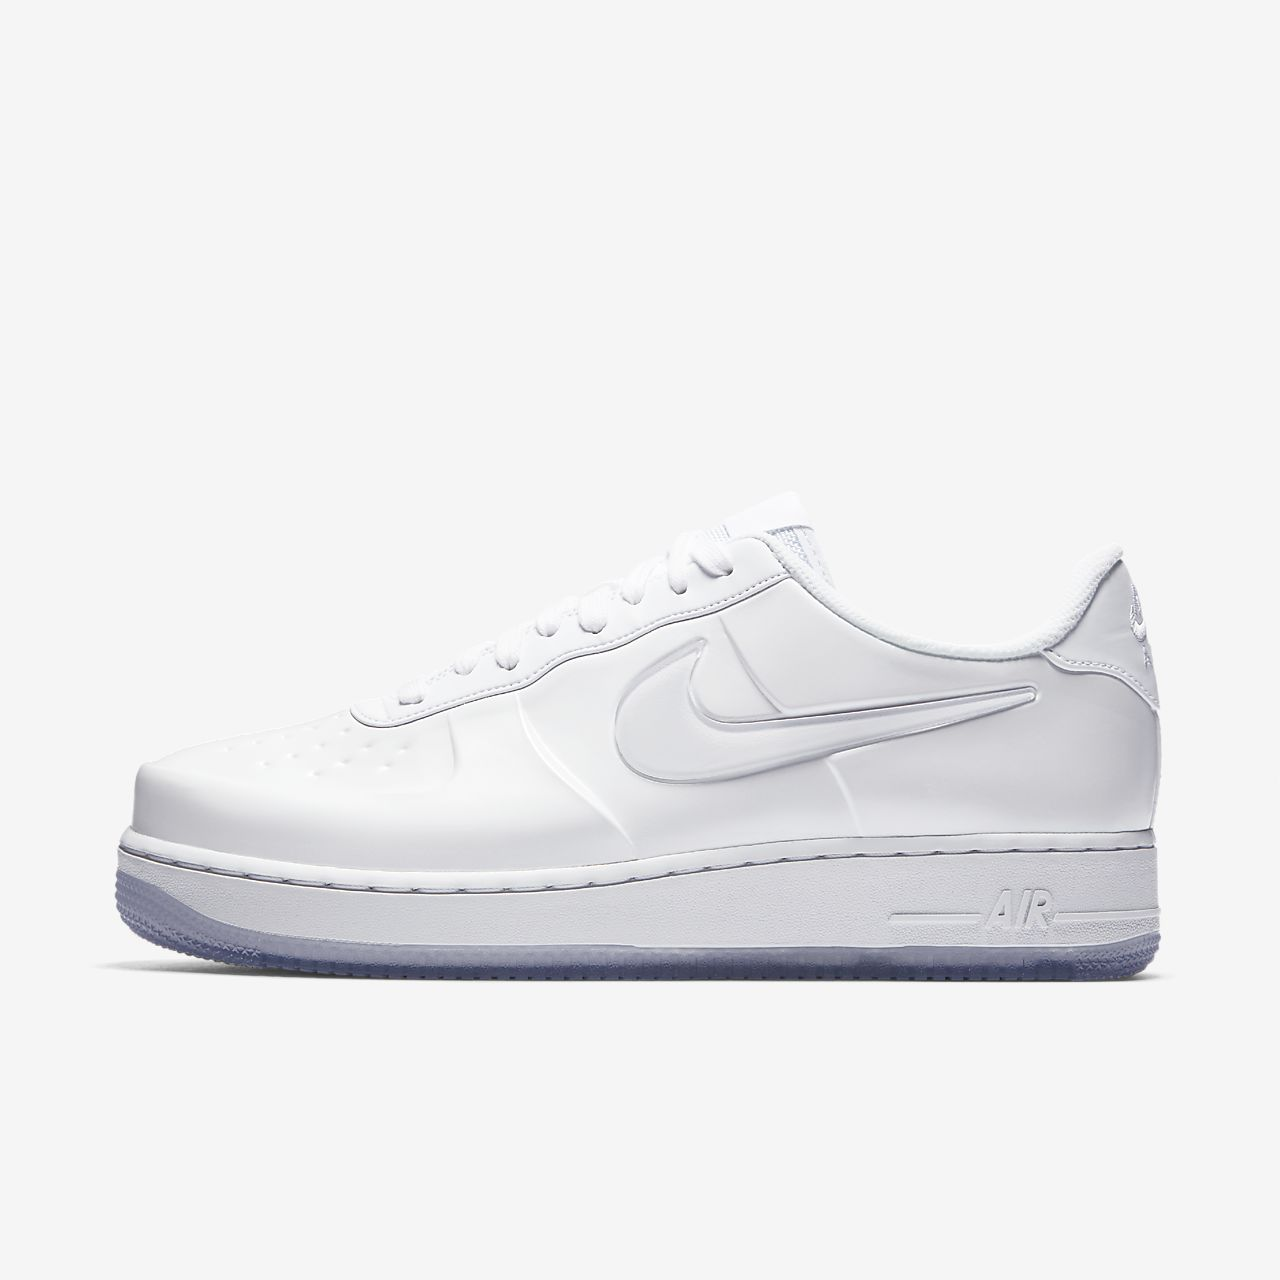 quality design 7f0fb 47b65 ... Nike Air Force 1 Foamposite Pro Cup Zapatillas - Hombre